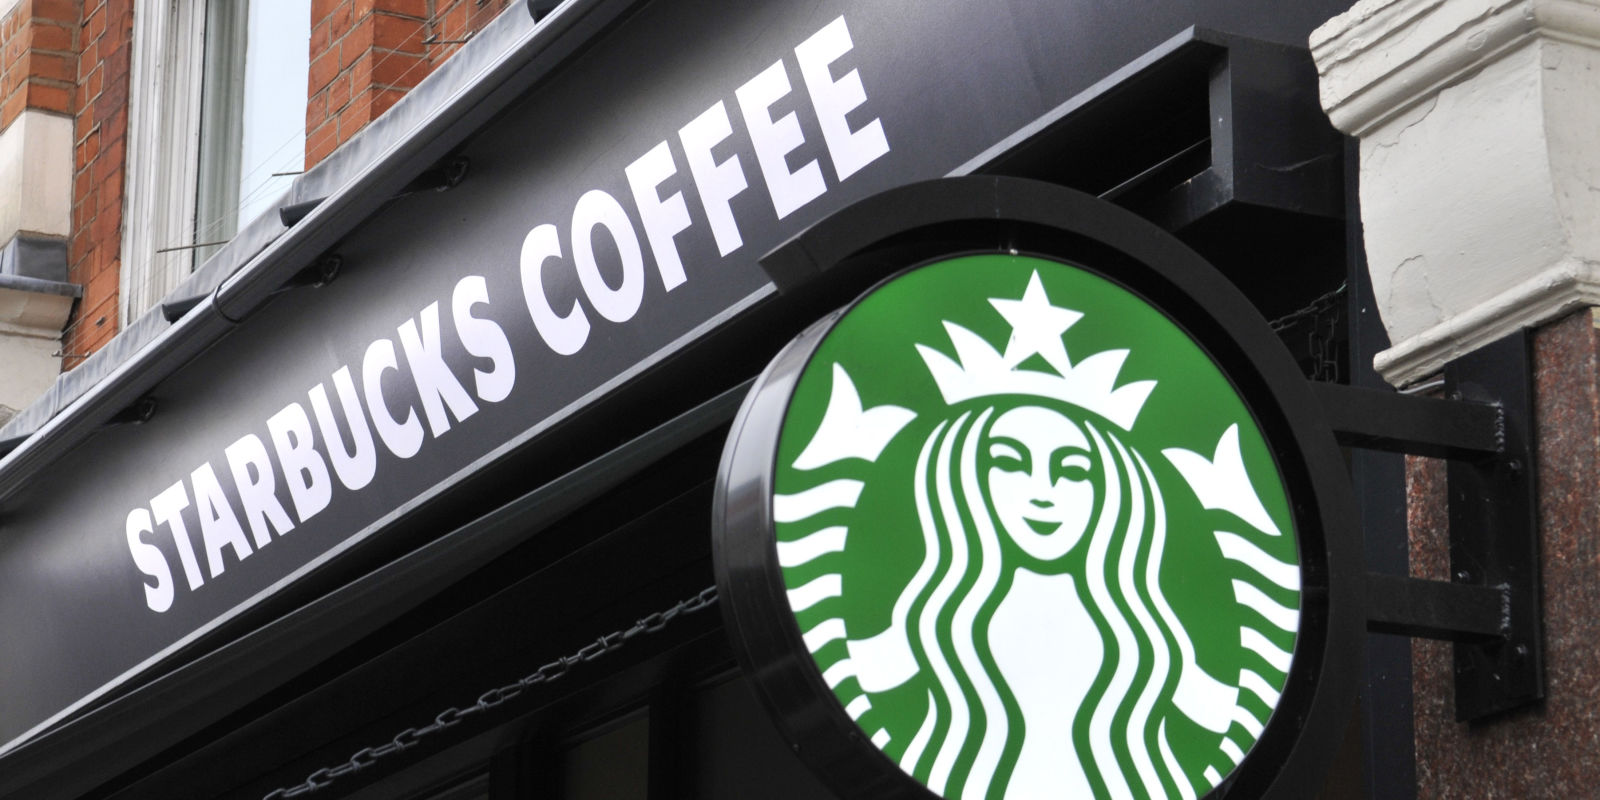 starbucks health and safety issues (cnn) two starbucks food items were voluntarily recalled last week because of  concerns of contamination with listeria or allergens.